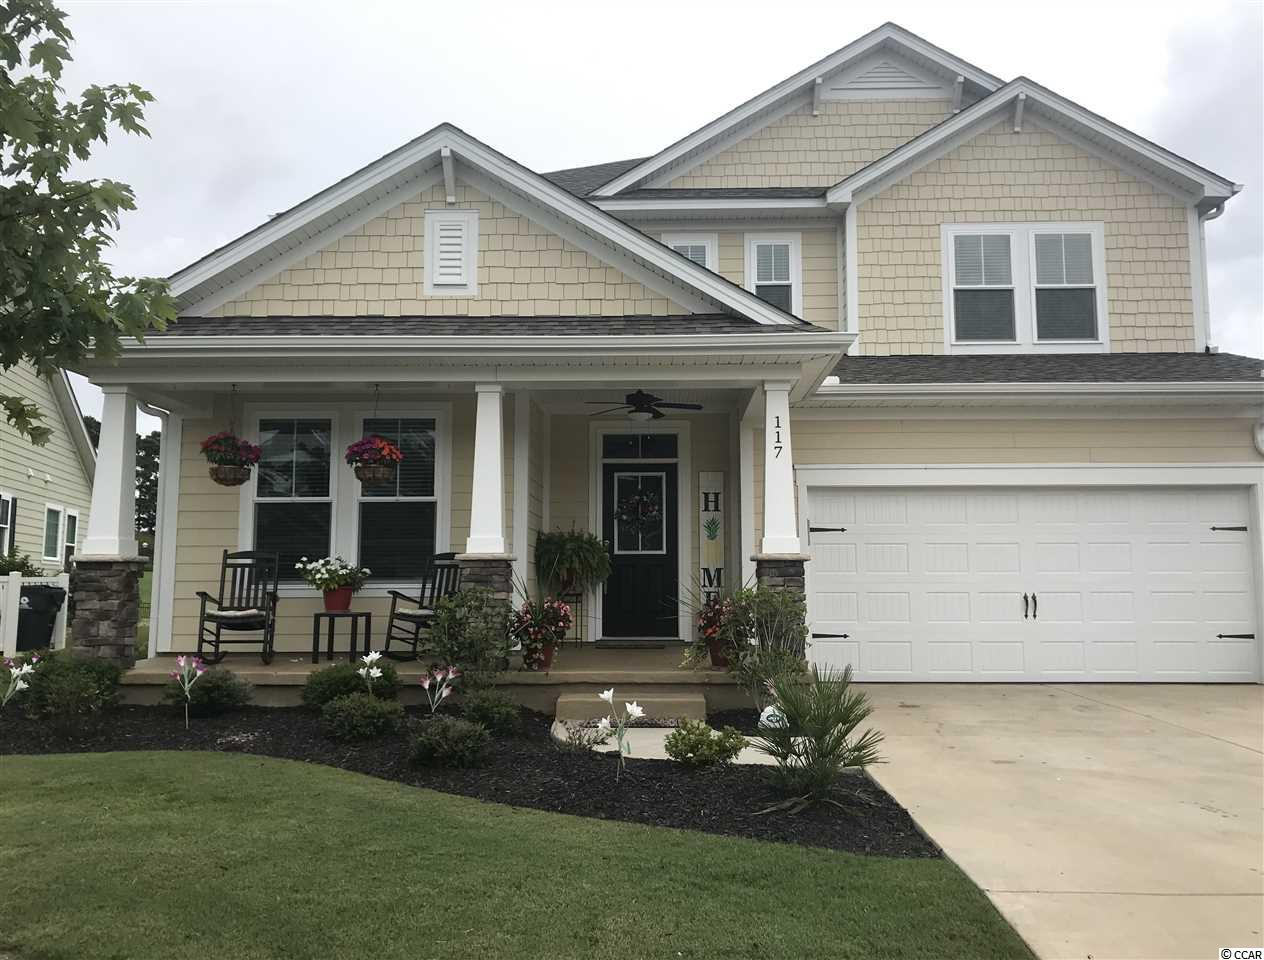 Beautiful home in mint condition located on 18th hole of TPC  myrtle Beach Golf Course. 5 BR, 3 1/2 bath, many upgrades and features. 1st floor Master, Ceiling fans in every room. Open floor plan. Minutes to beach and Marsh walk.